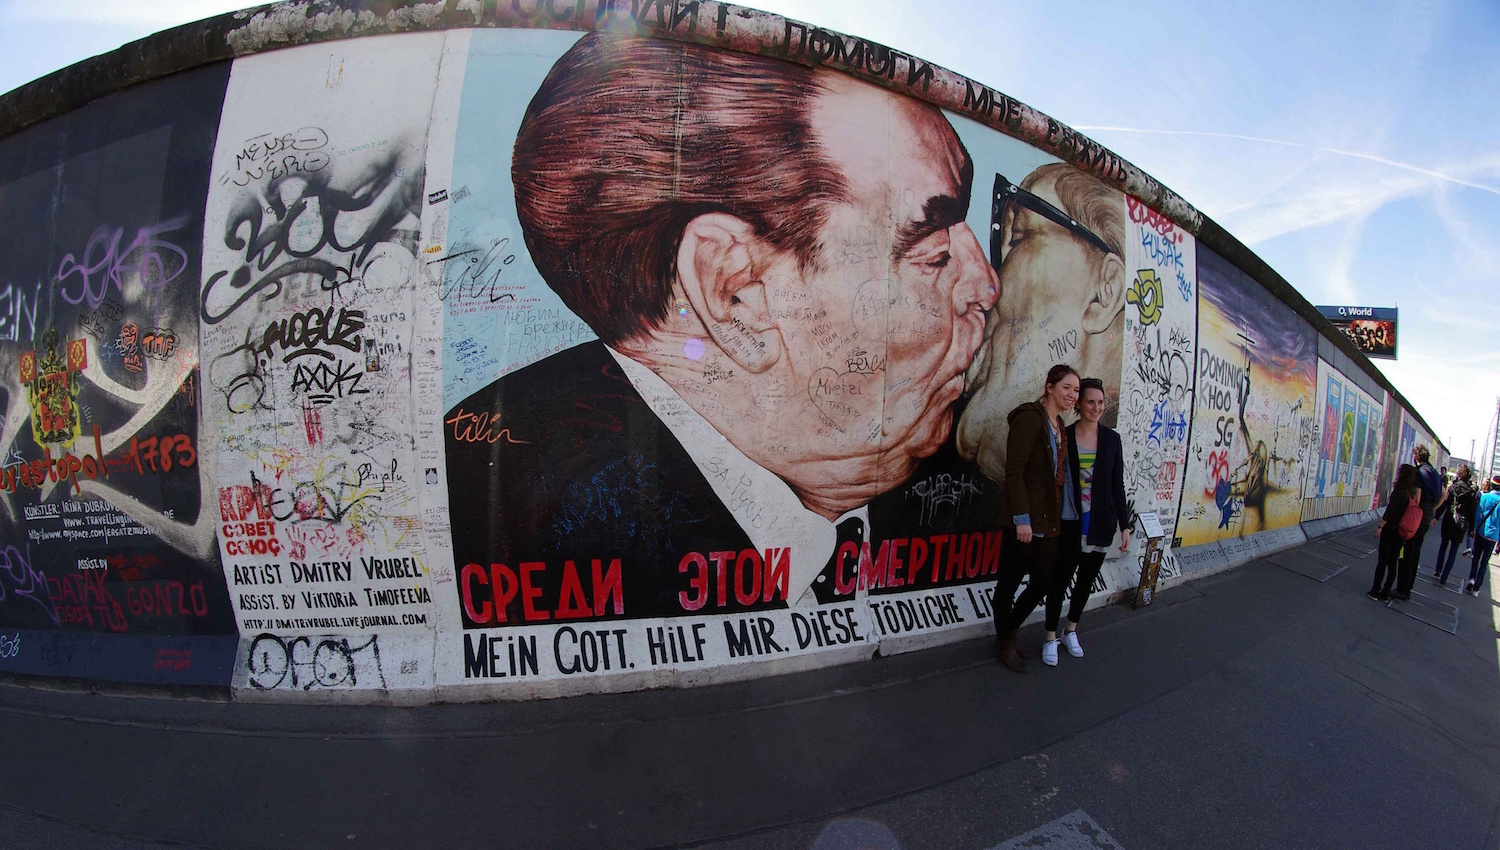 La controverse sur la restauration de l'East Side Gallery